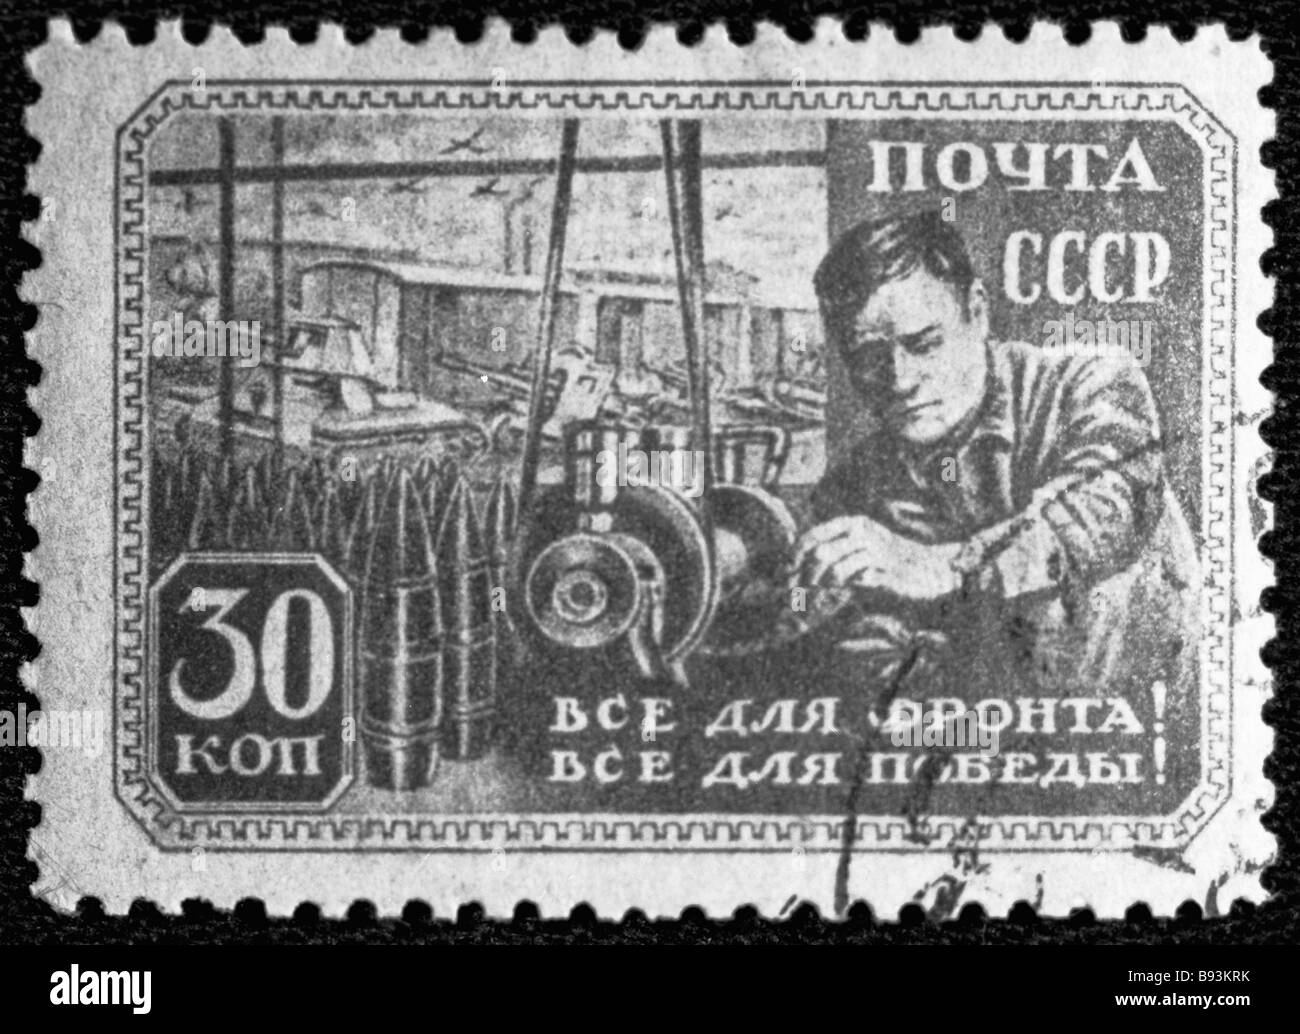 This Soviet postal stamp was issued during the 1941 1945 Great Patriotic War - Stock Image